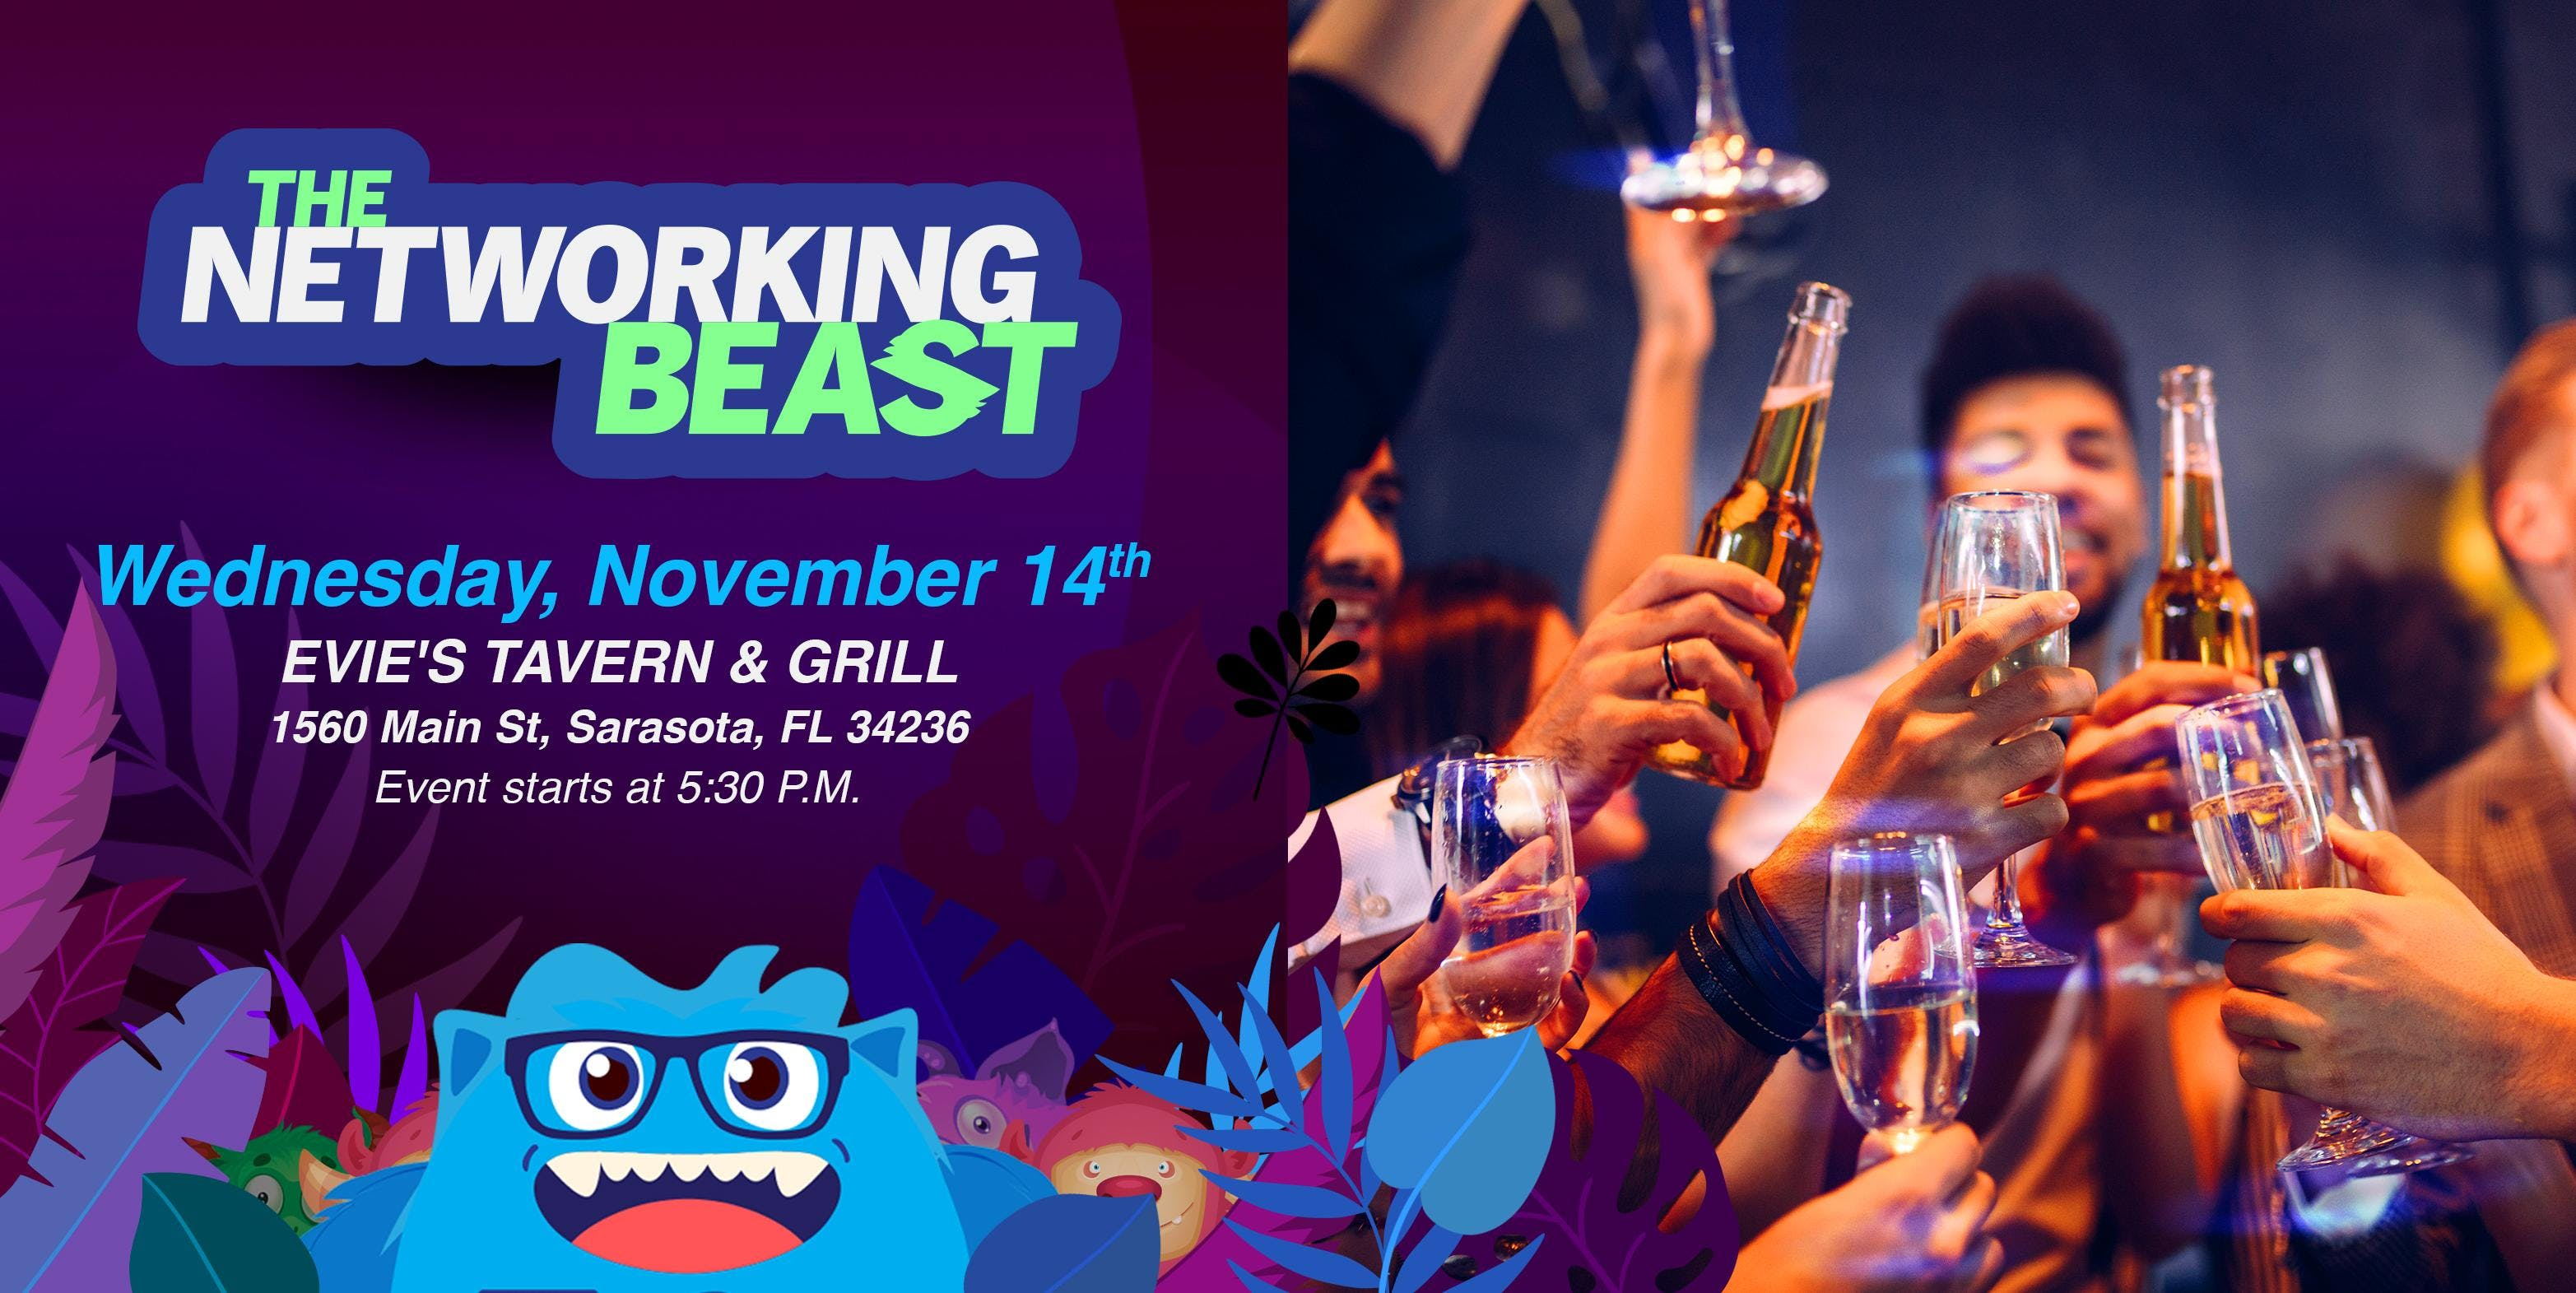 The Networking Beast - Come & Network With Us